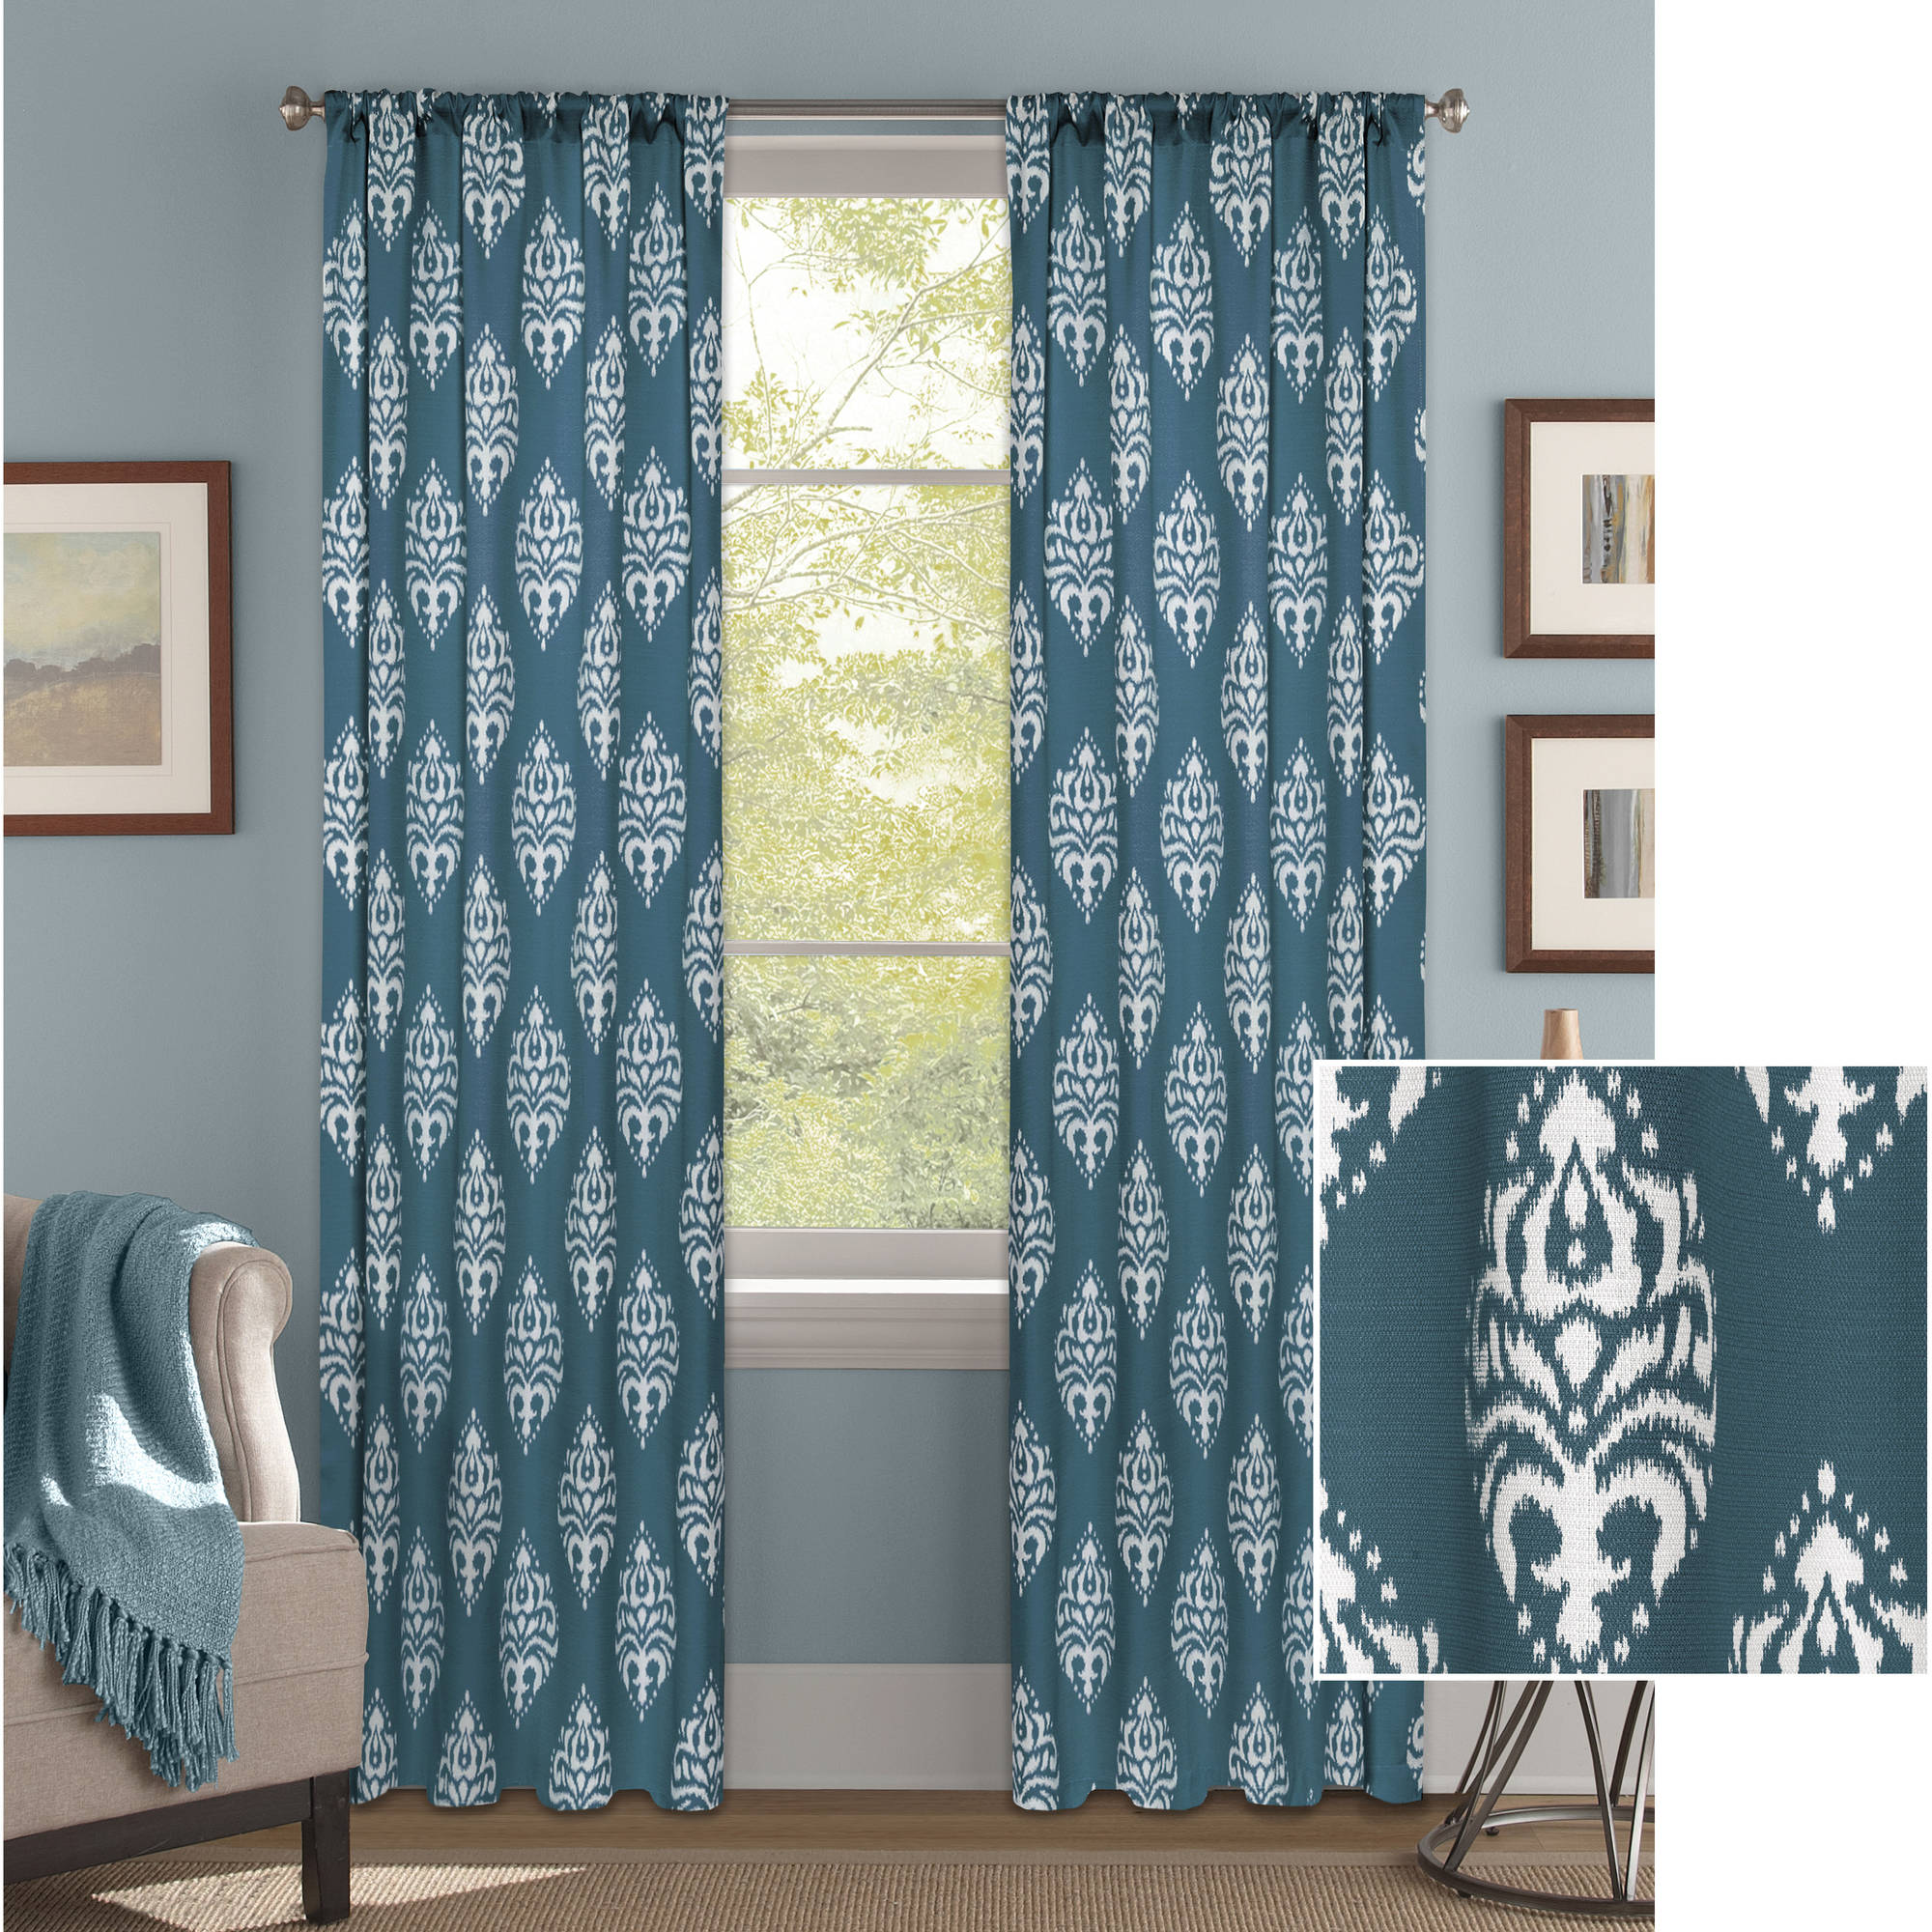 Better Homes And Gardens Traditional Damask Curtain Panel   Walmart.com